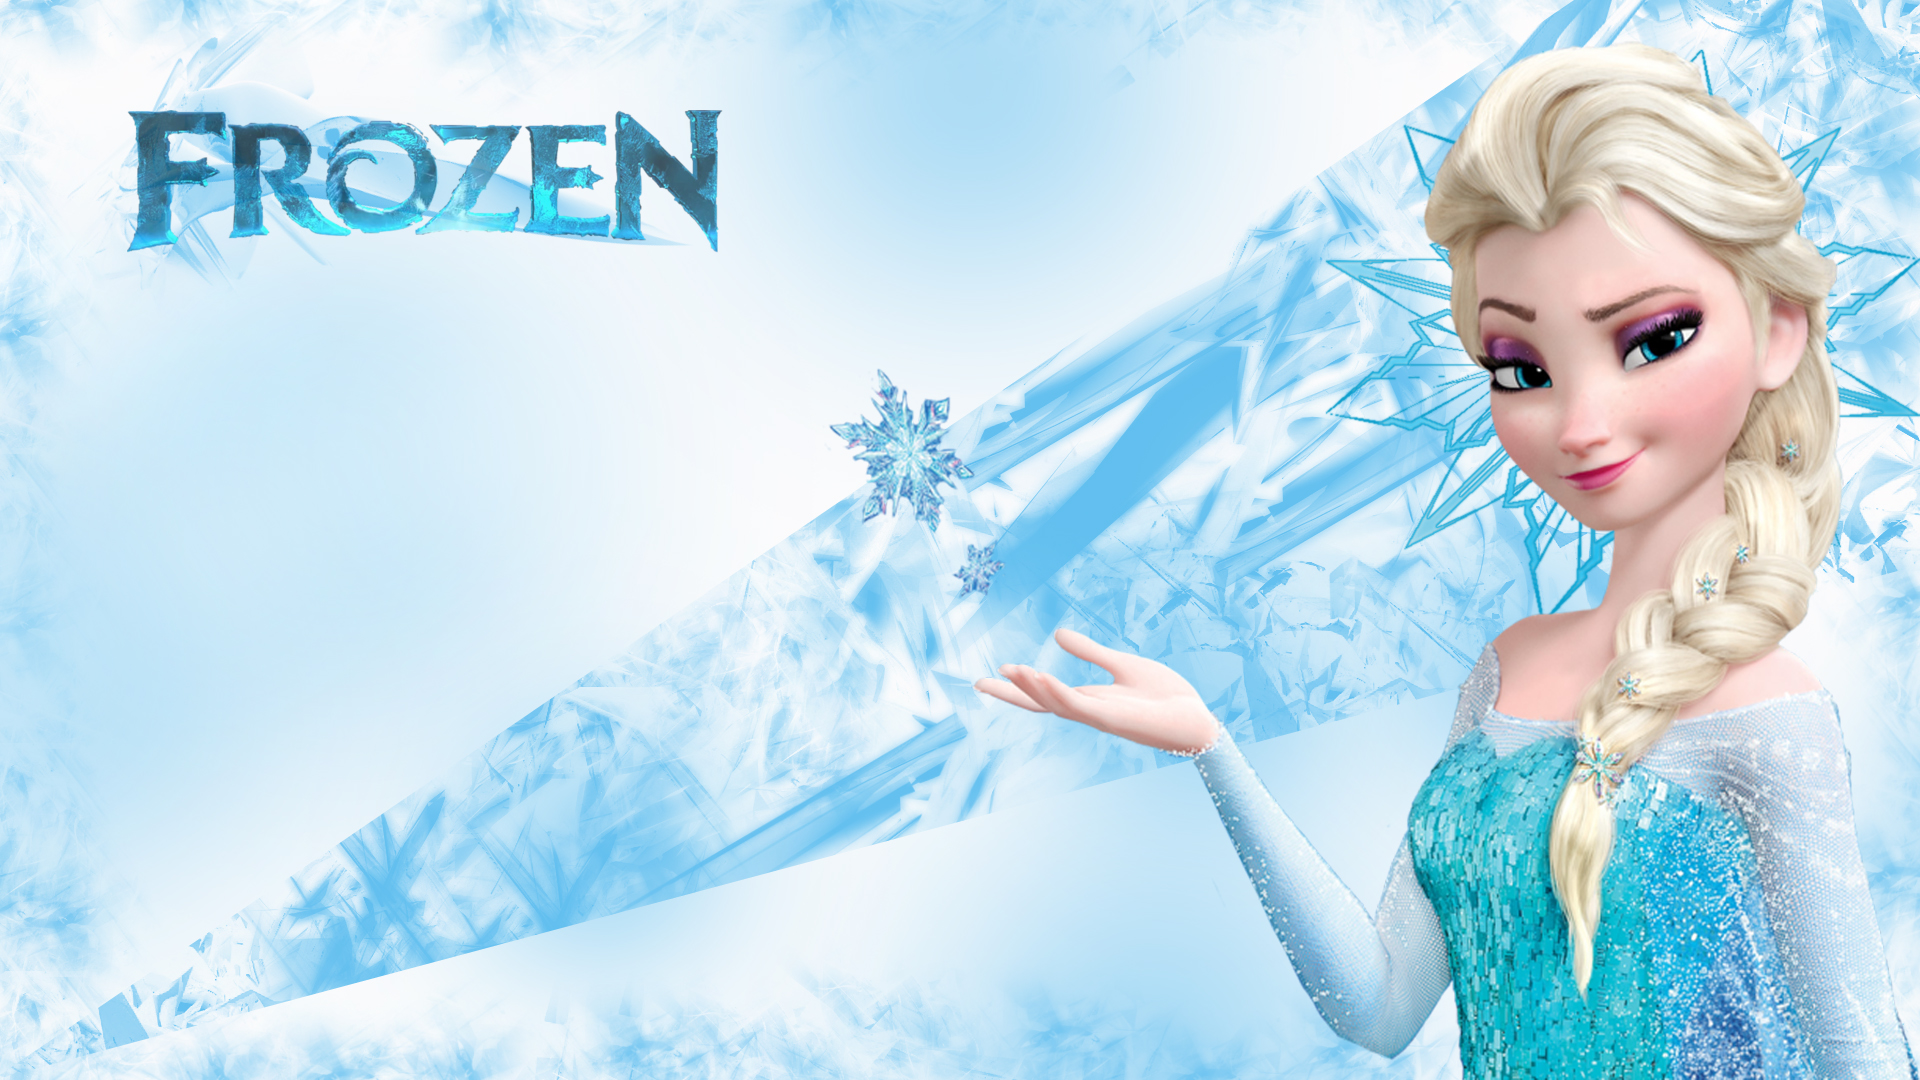 hd wallpaper frozen - photo #13